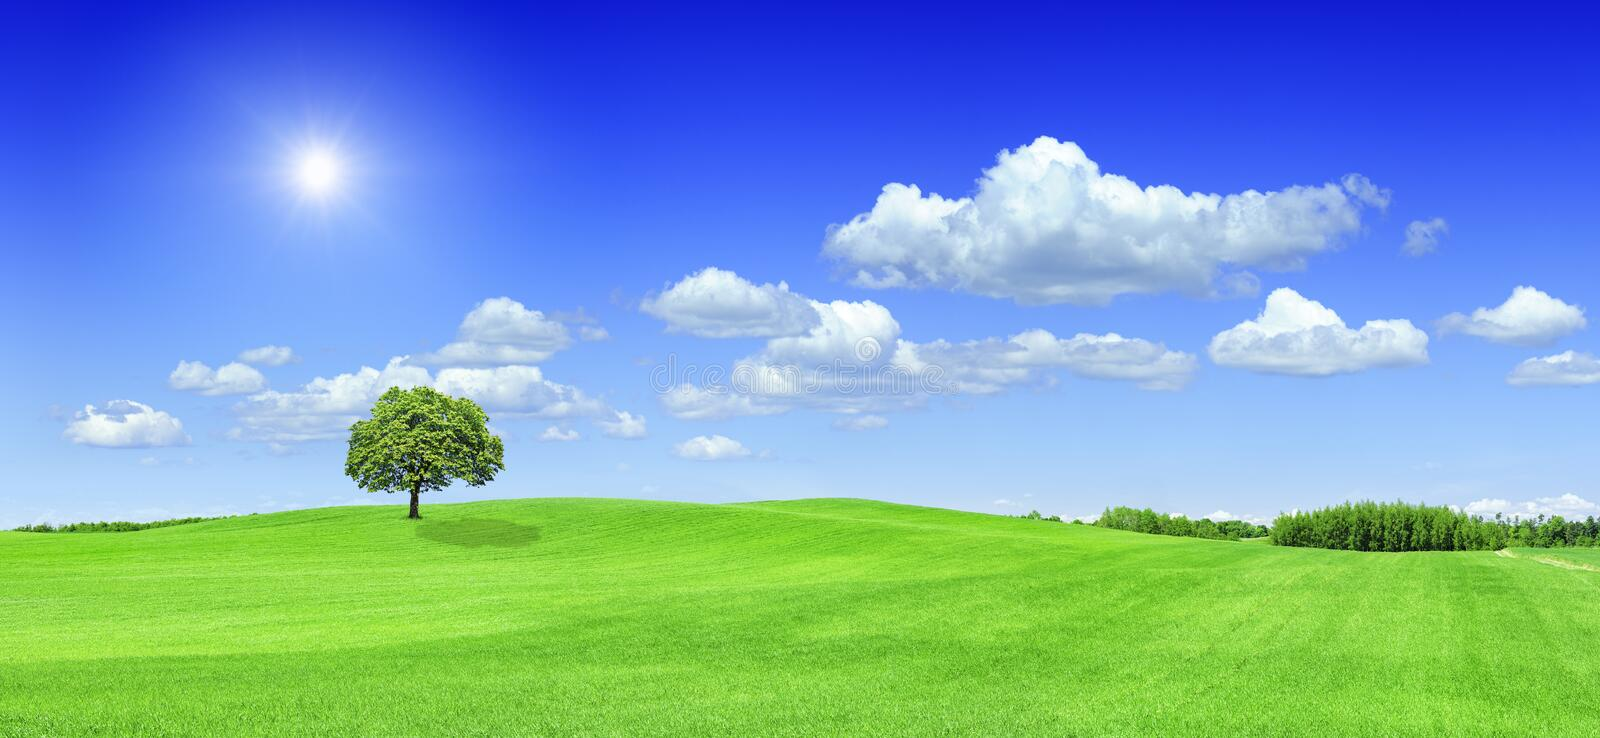 Idyllic view, the sun shining over a lonely tree standing on gre royalty free stock images